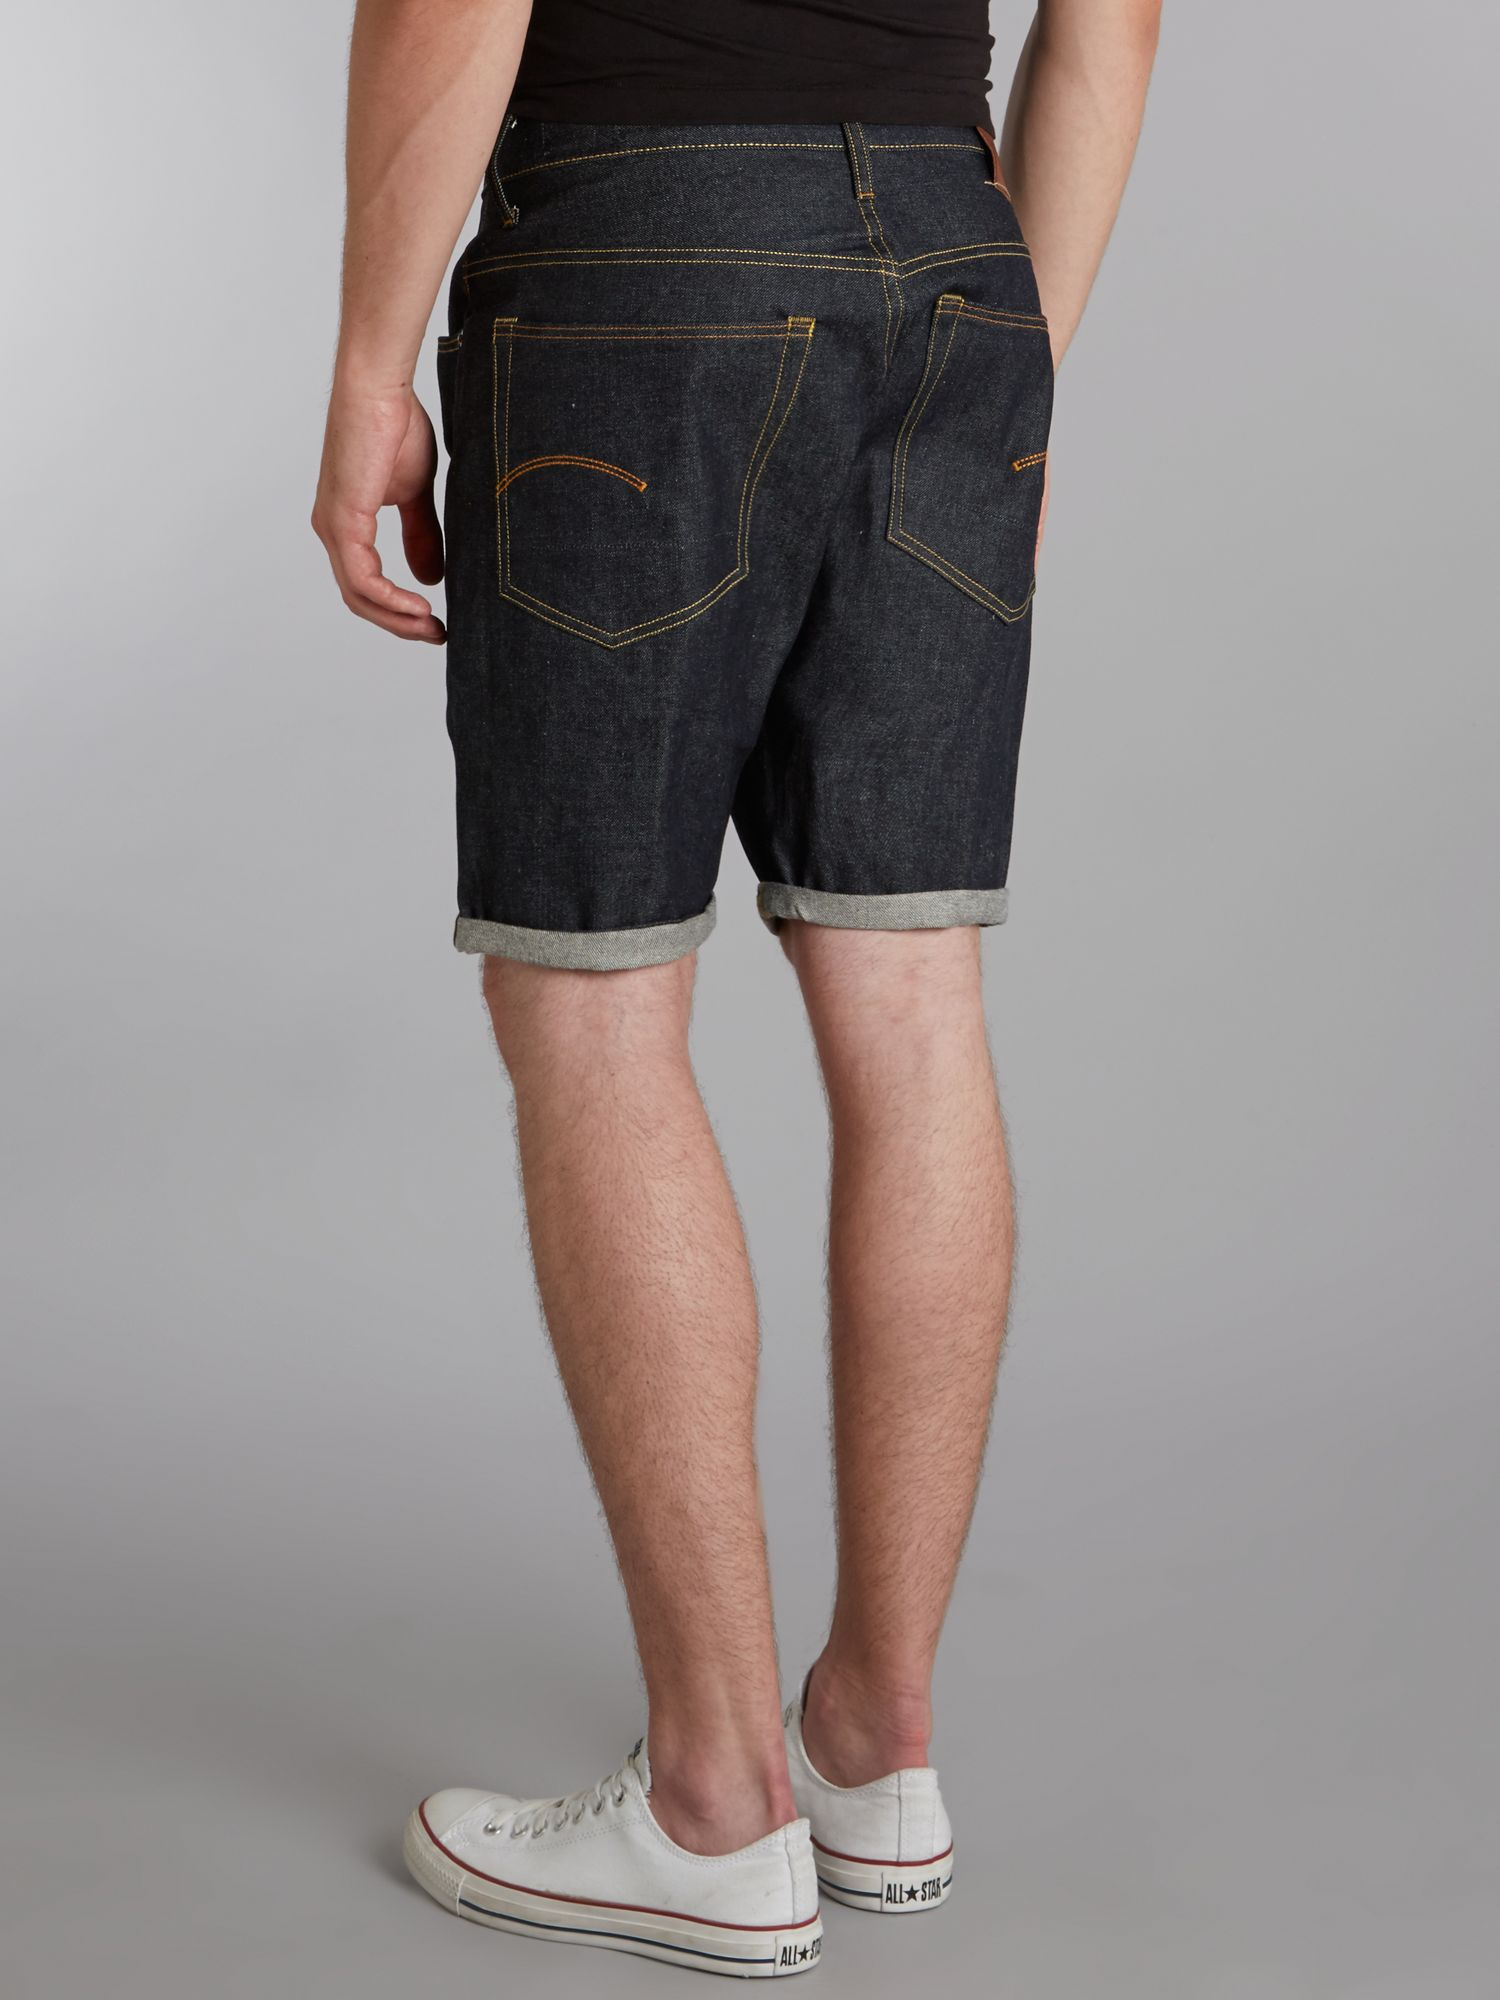 Free shipping BOTH ways on denim shorts, from our vast selection of styles. Fast delivery, and 24/7/ real-person service with a smile. Denim Cut Off Shorts in Shake It Out. $ 4 Rated 4 stars. Like. G-Star. Arc 3D 1/2 Shorts in Racha Grey Denim. $ MSRP: $ Like. Blank NYC. High-Rise Distressed Shorts in Poster Child.